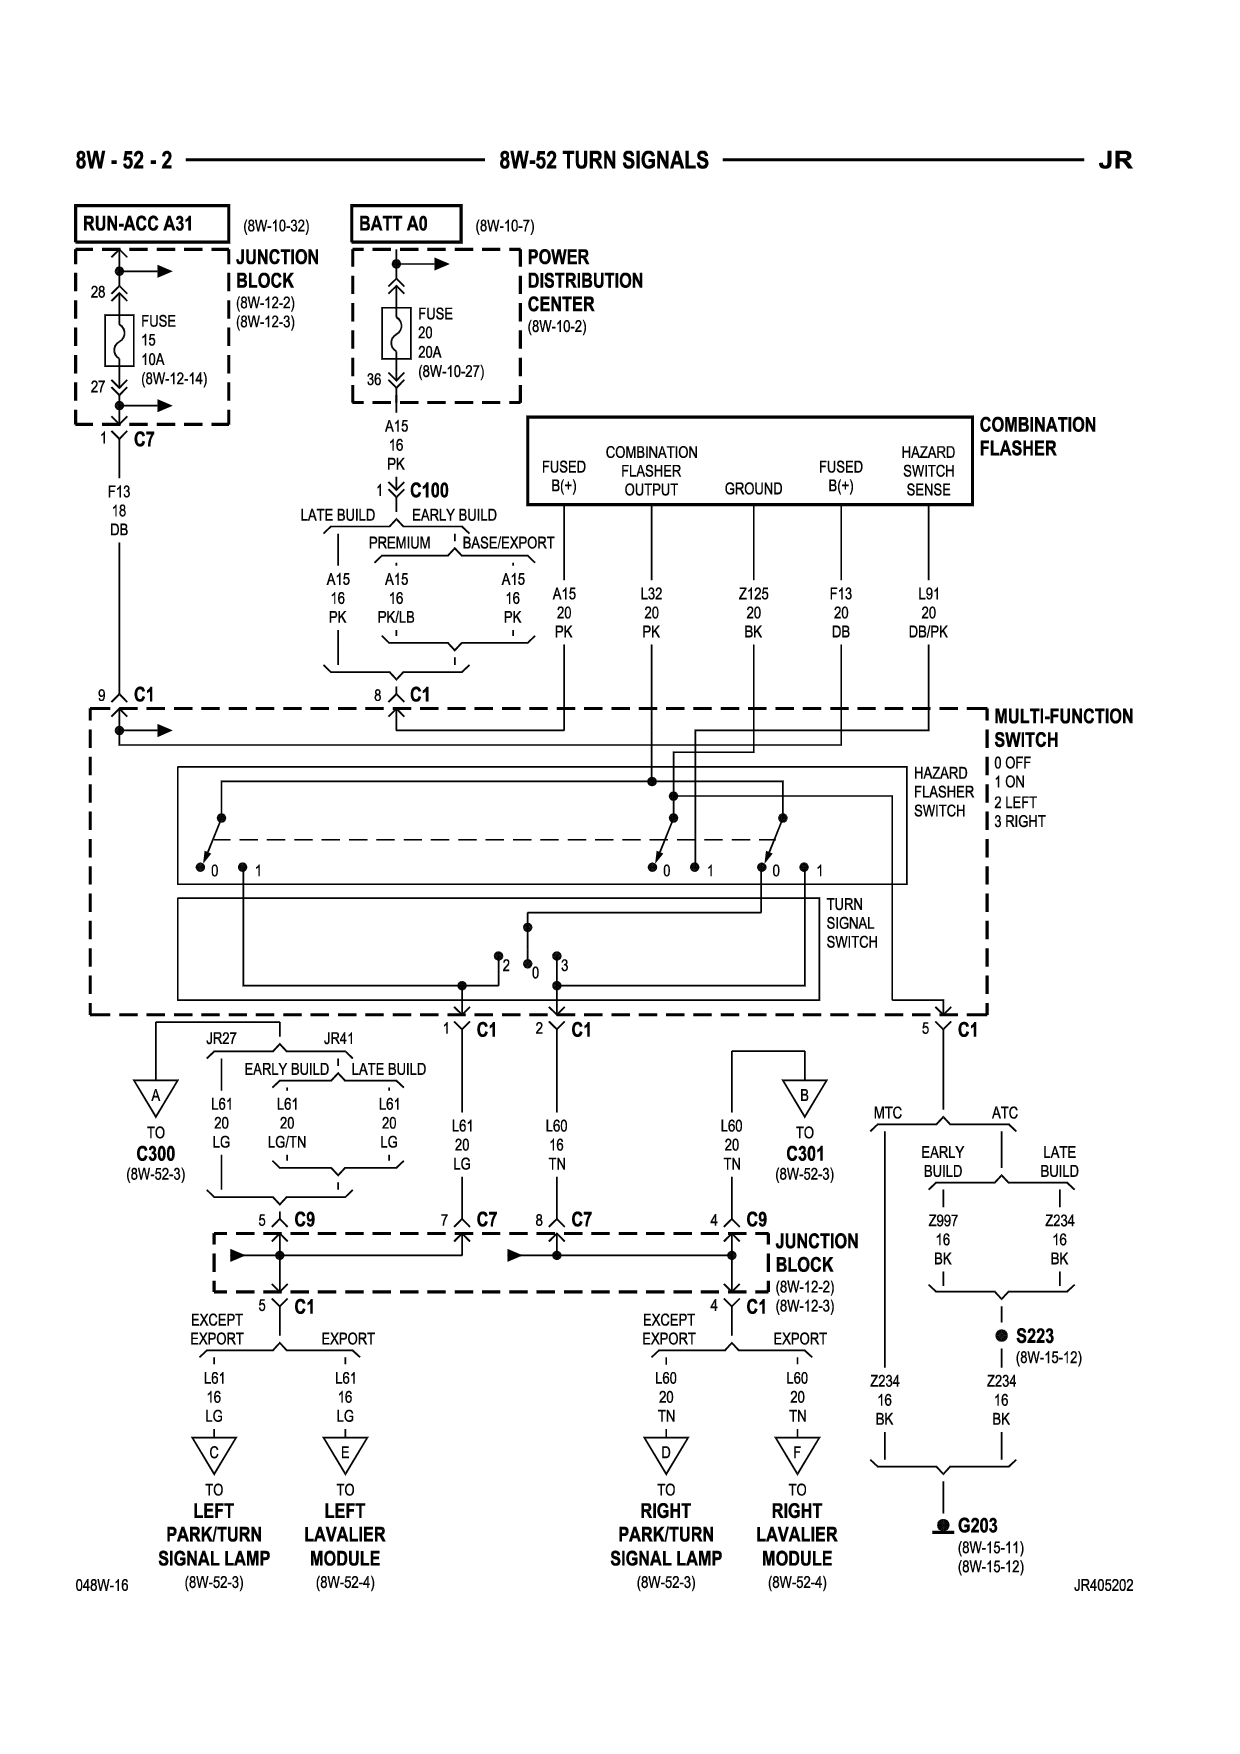 2004 Chrysler Sebring Power Window Wiring Diagram ...